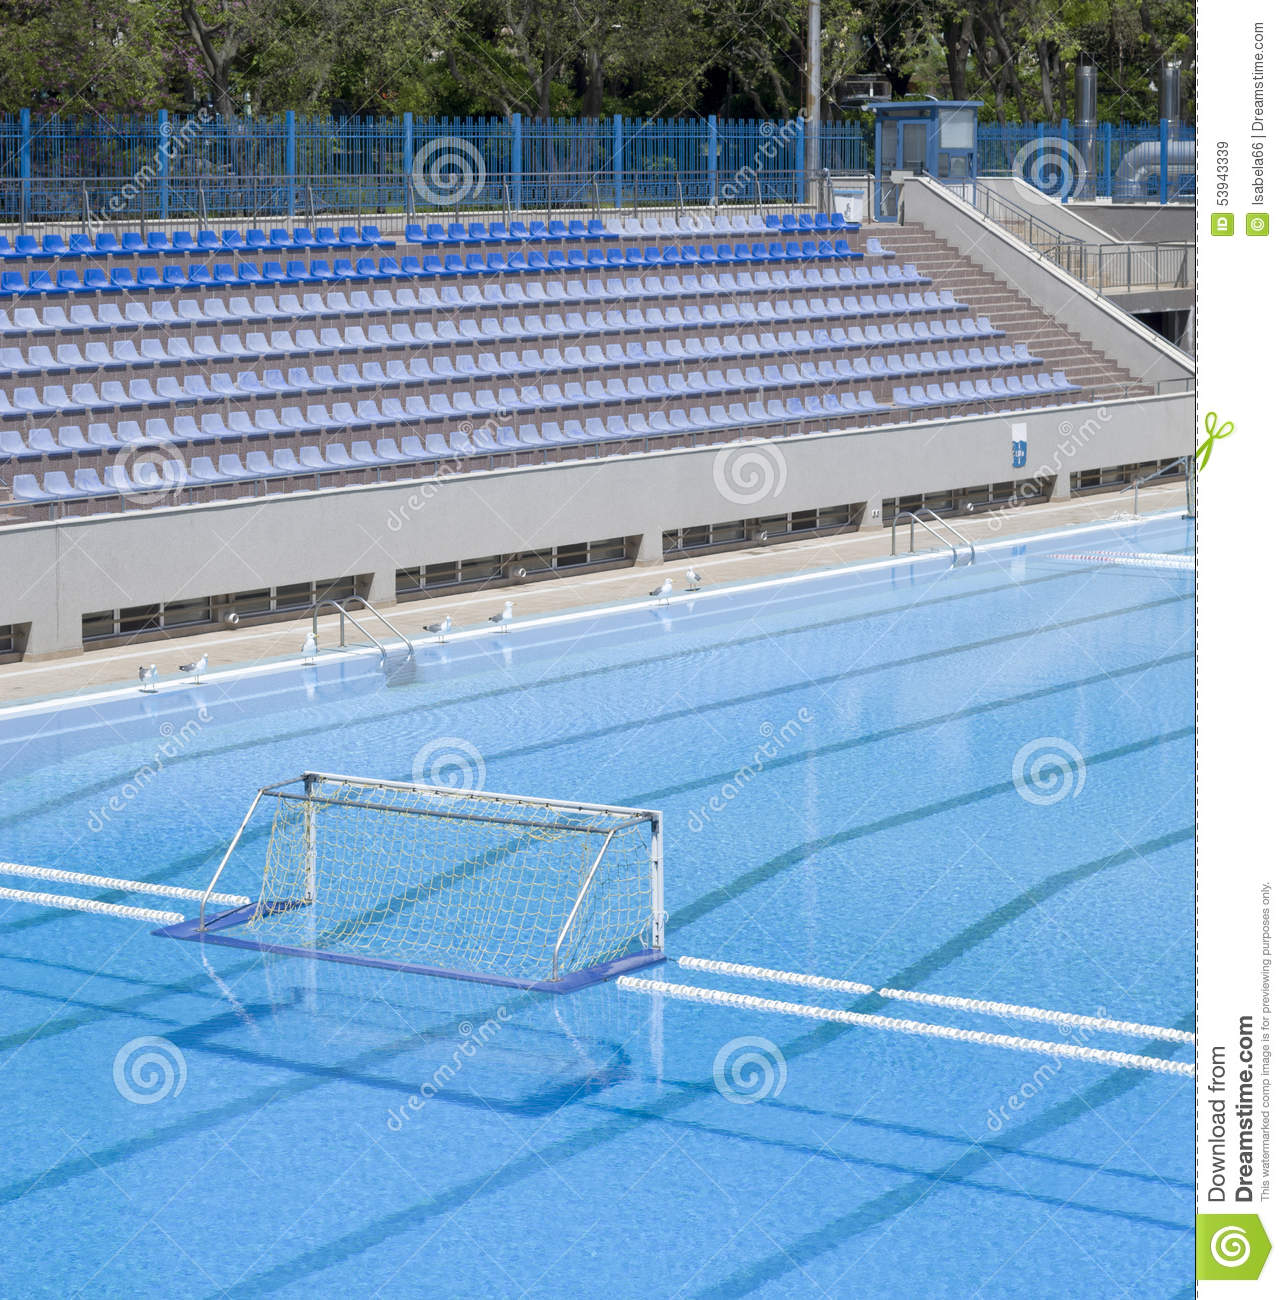 Water Polo Goal At The Outdoor Swimming Pool Stock Photo Image 53943339